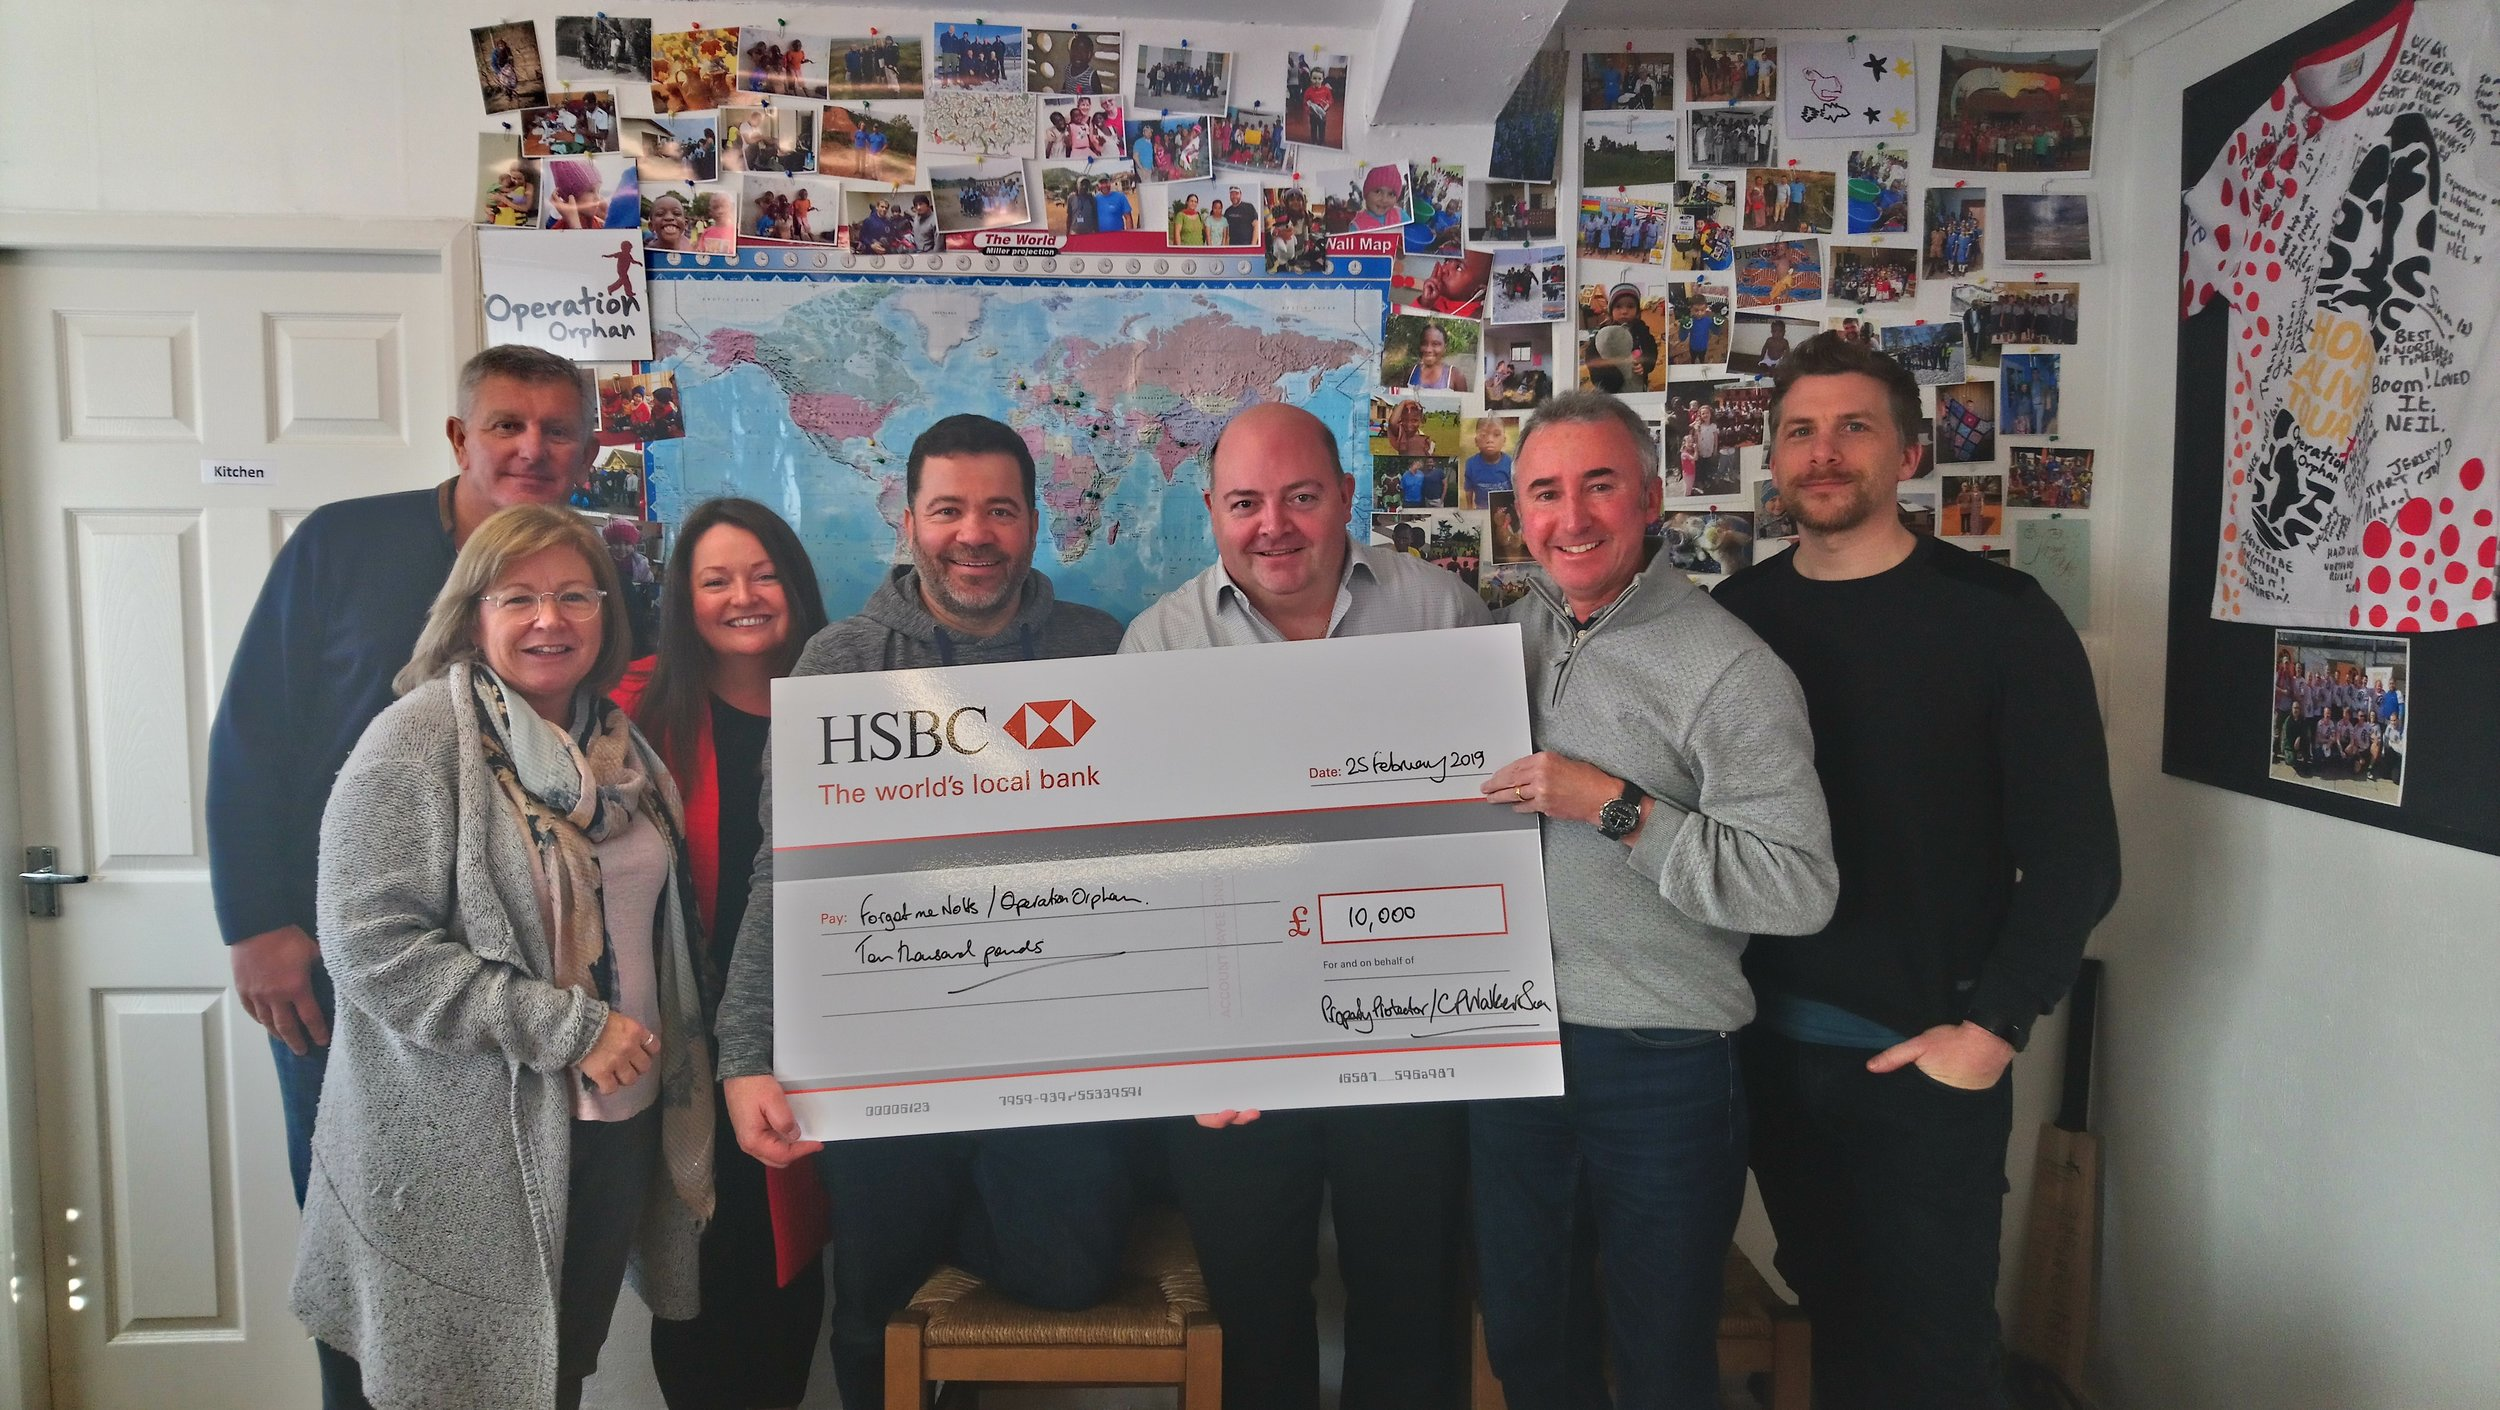 Here are our trustees receiving the surprise cheque!